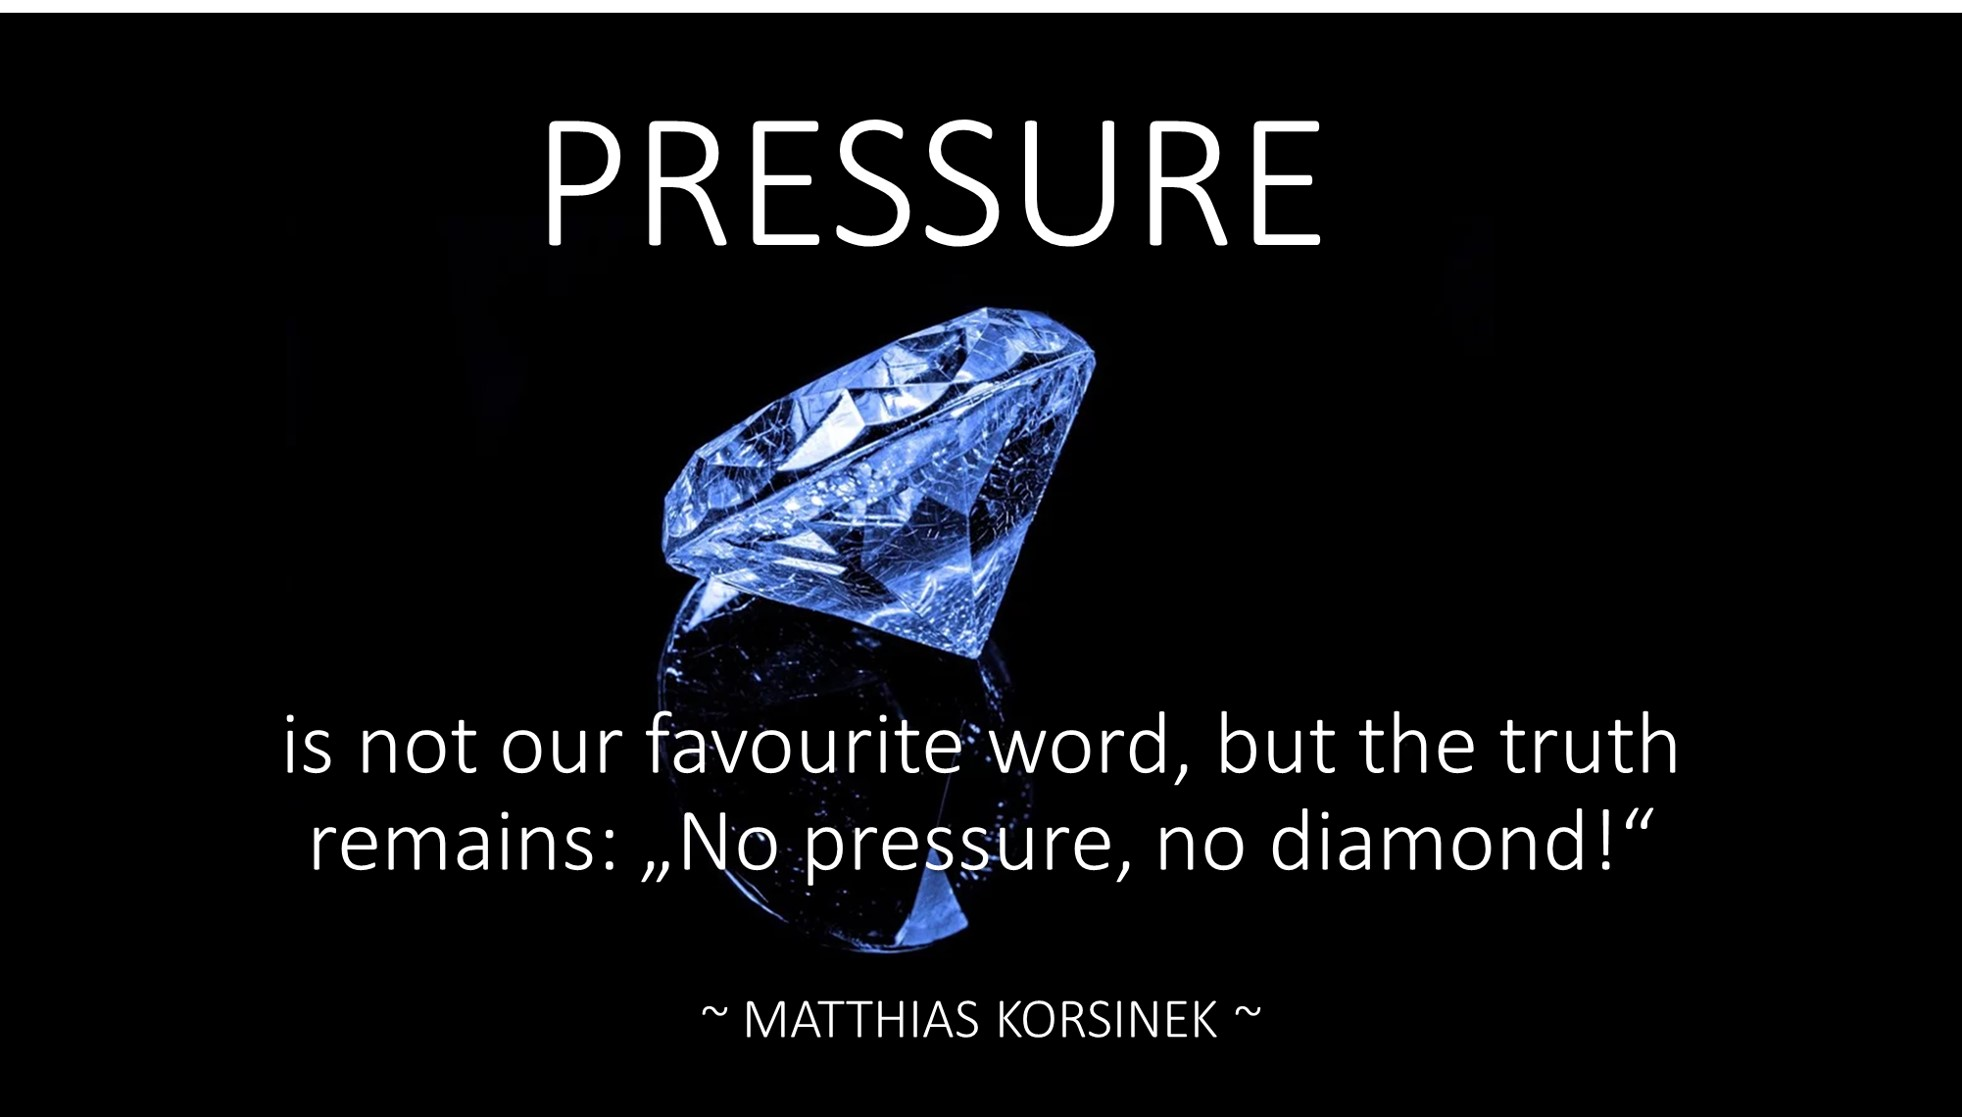 PRESSURE is not our favourite word but jpg